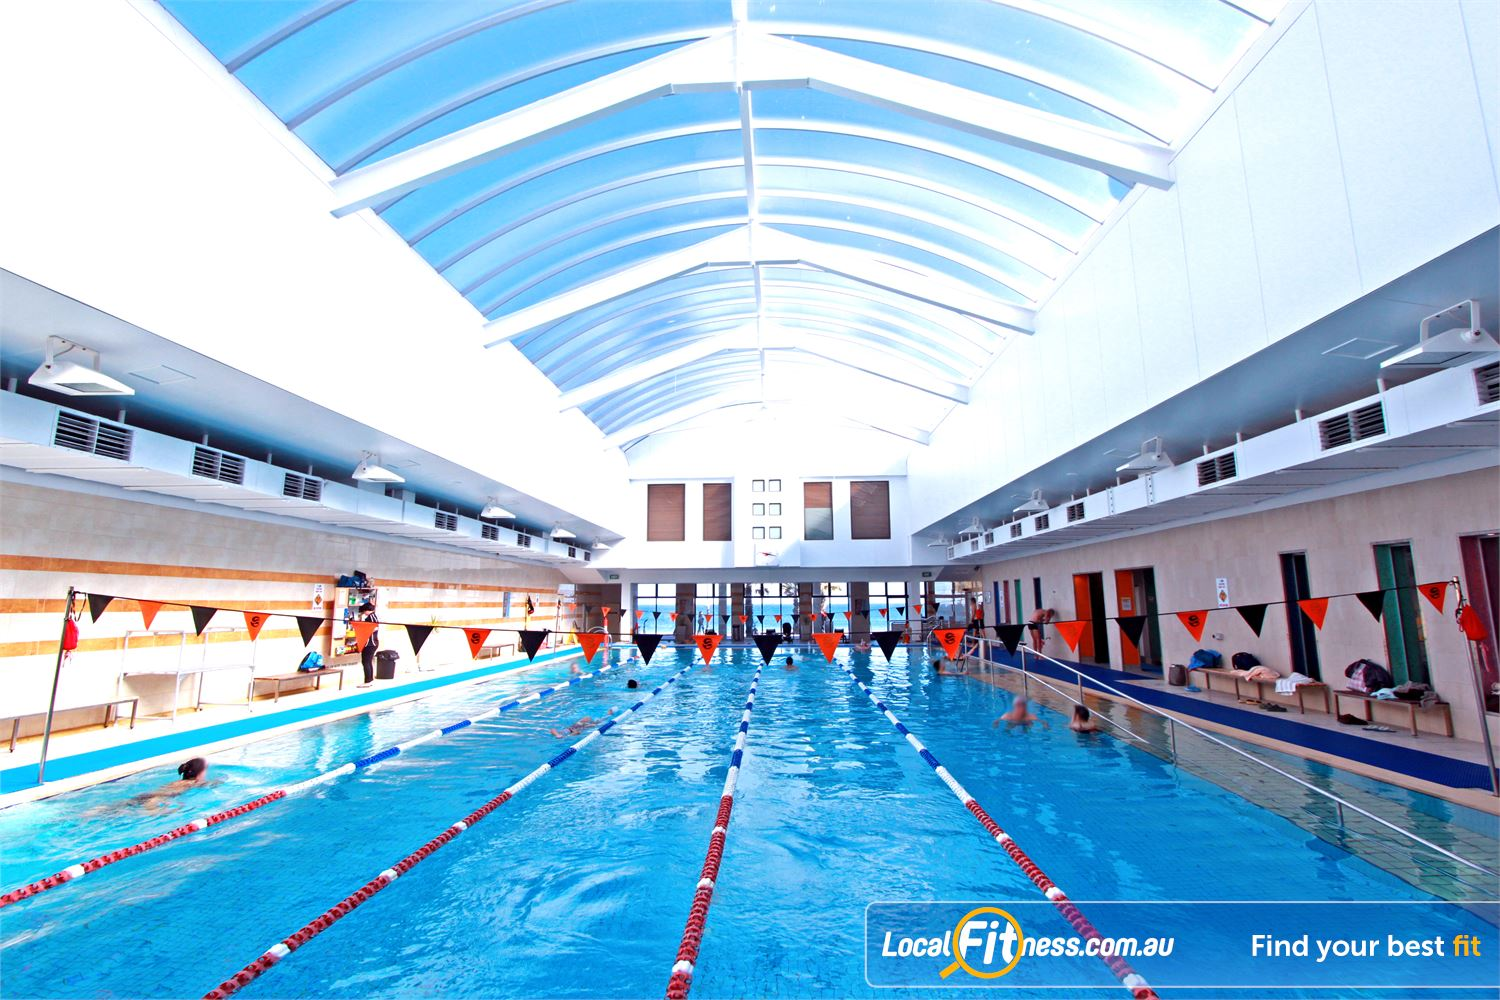 South Pacific Health Clubs St Kilda The renowned St Kilda Sea Baths - one of Melbourne's most iconic destinations.